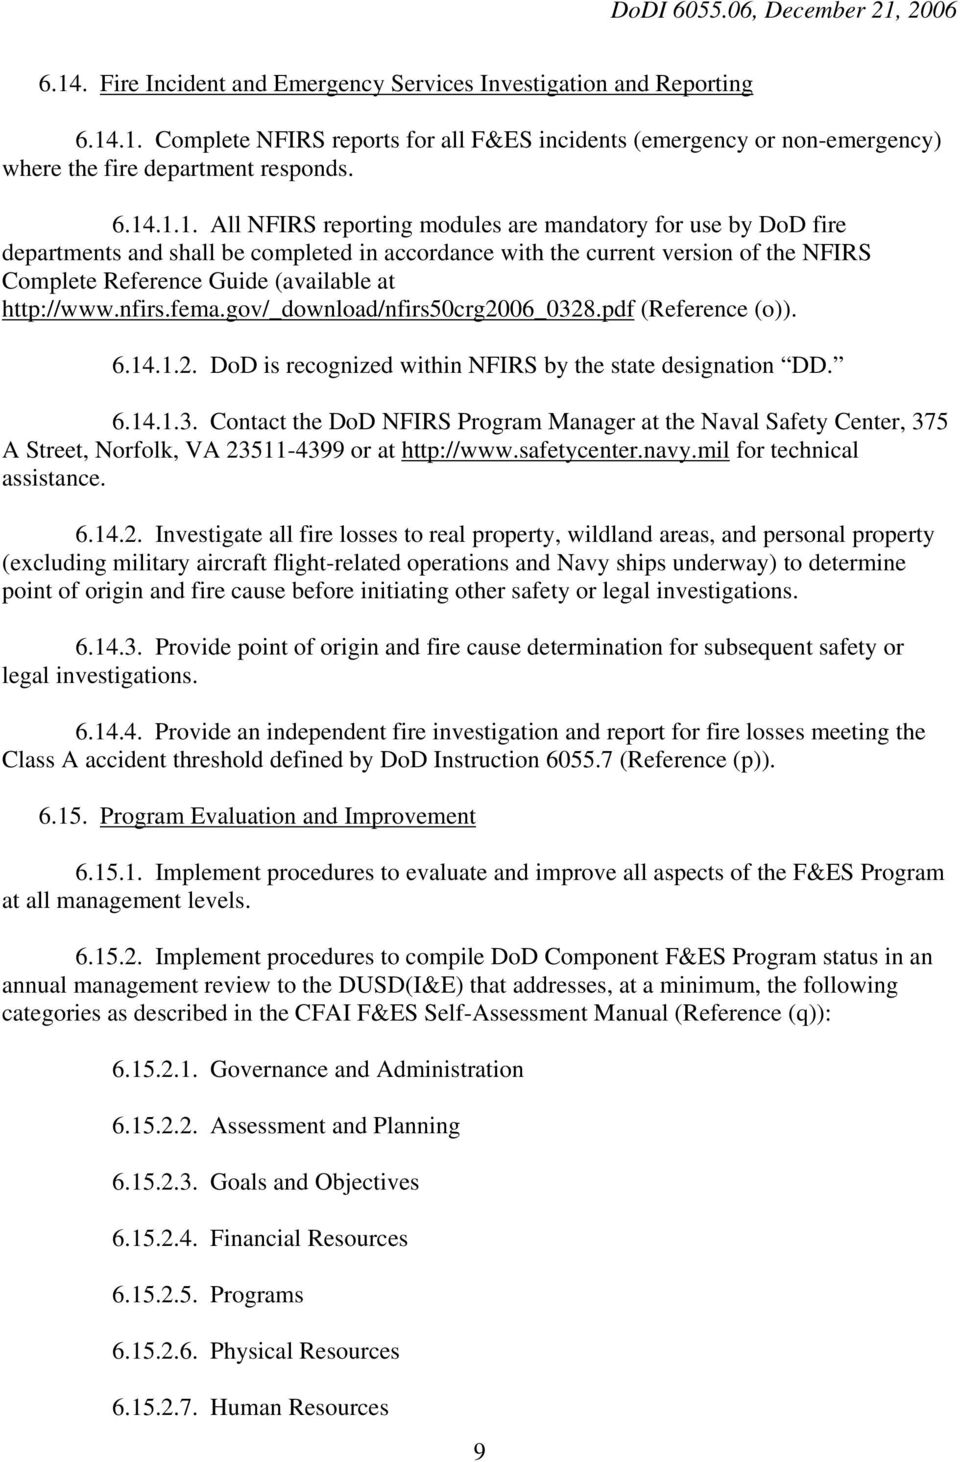 nfirs.fema.gov/_download/nfirs50crg2006_0328.pdf (Reference (o)). 6.14.1.2. DoD is recognized within NFIRS by the state designation DD. 6.14.1.3. Contact the DoD NFIRS Program Manager at the Naval Safety Center, 375 A Street, Norfolk, VA 23511-4399 or at http://www.